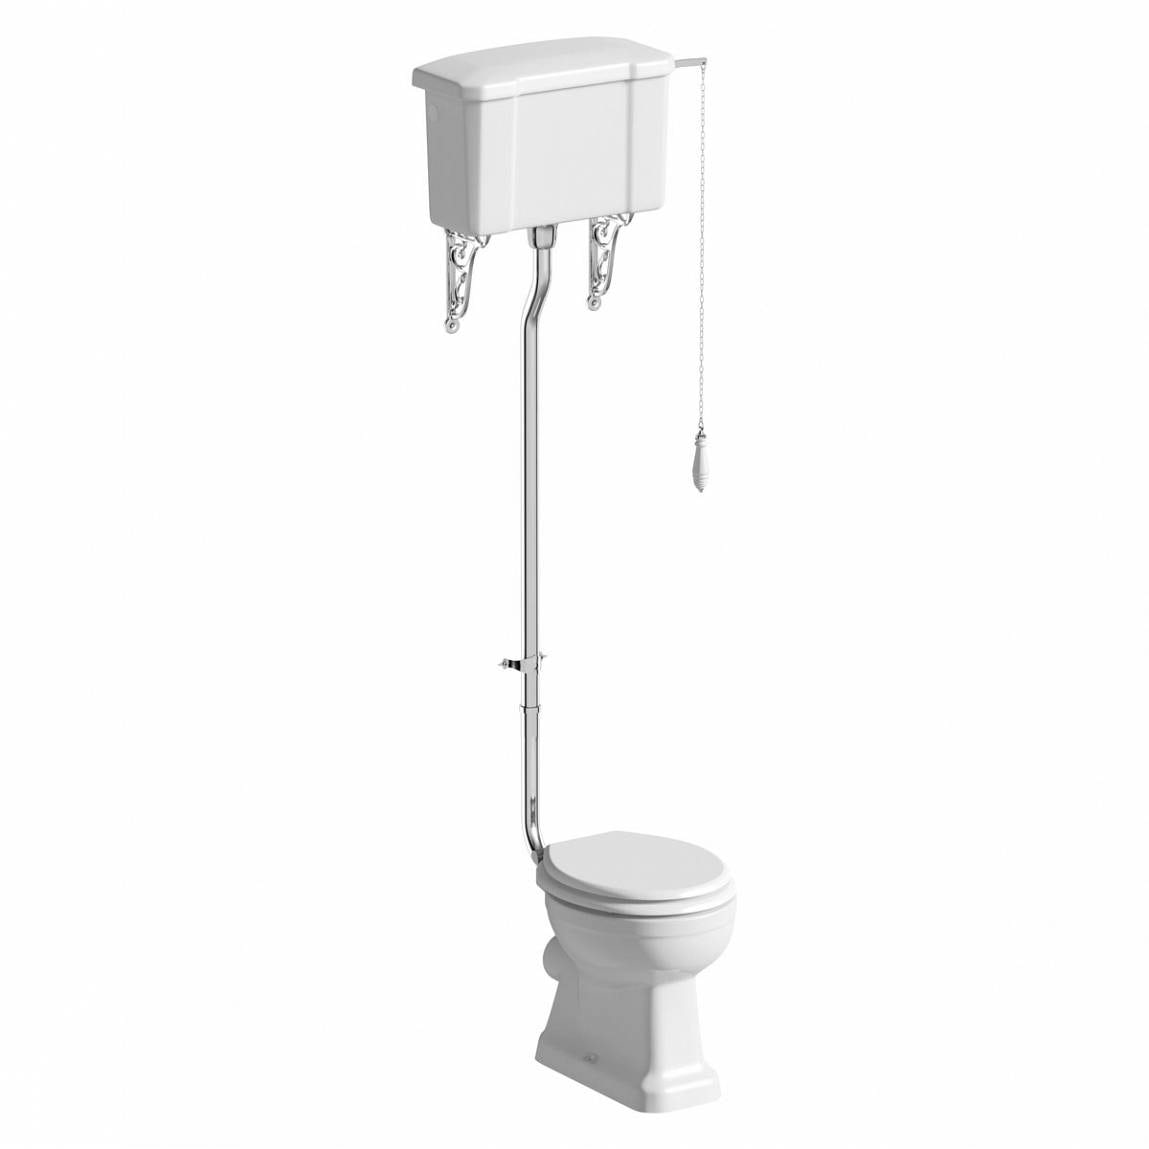 Camberley High Level Toilet inc Luxury White Soft Close Seat